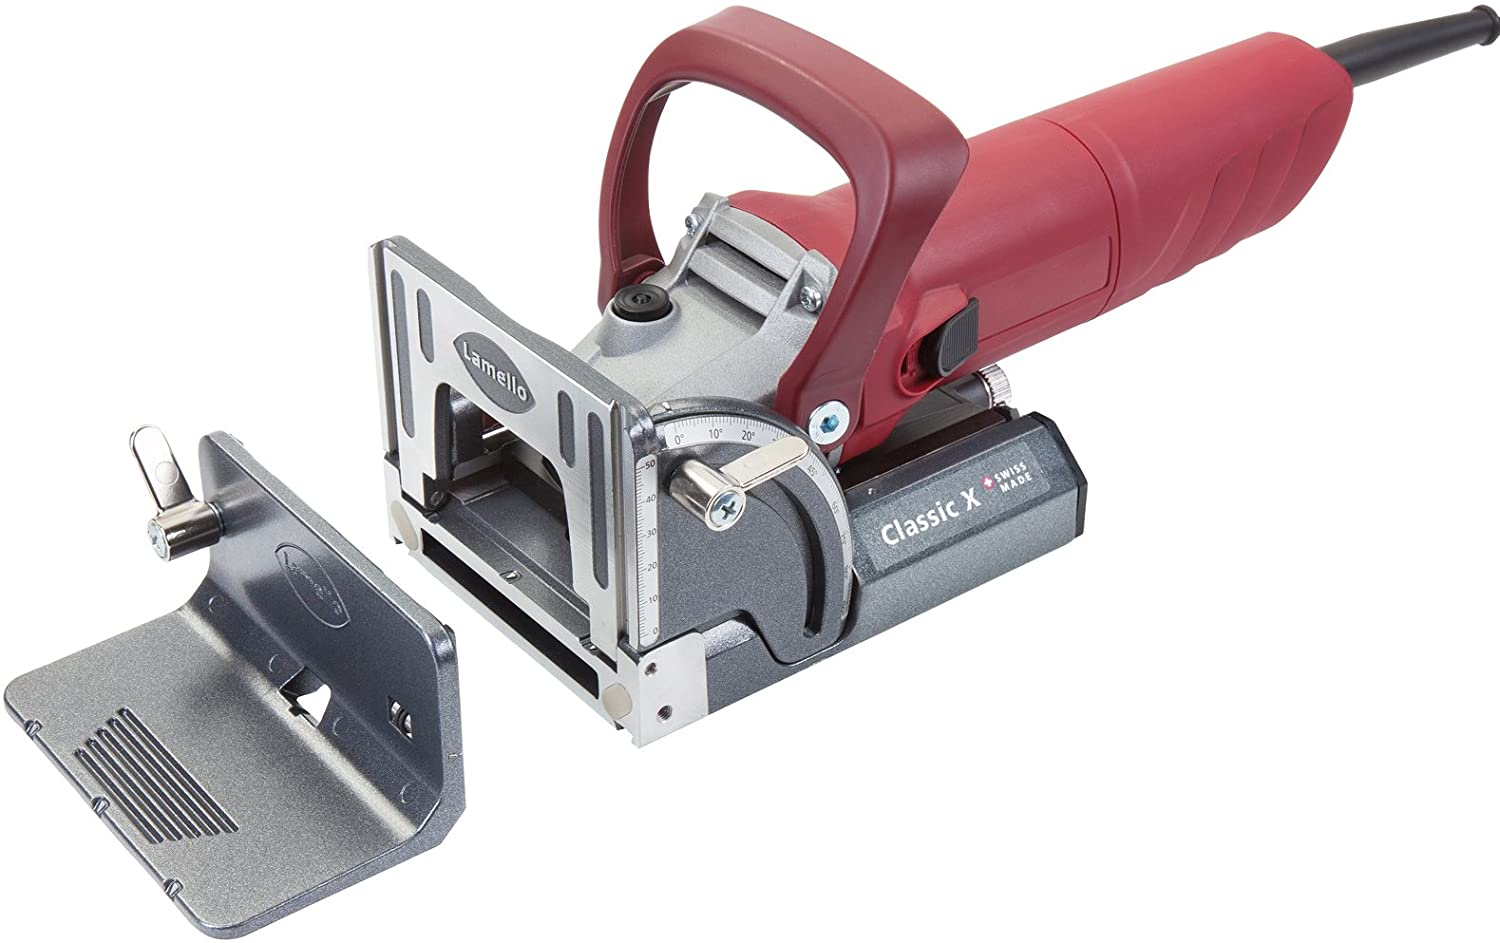 best biscuit joiner: Lamello Classic x 101600 is what you need for versatility